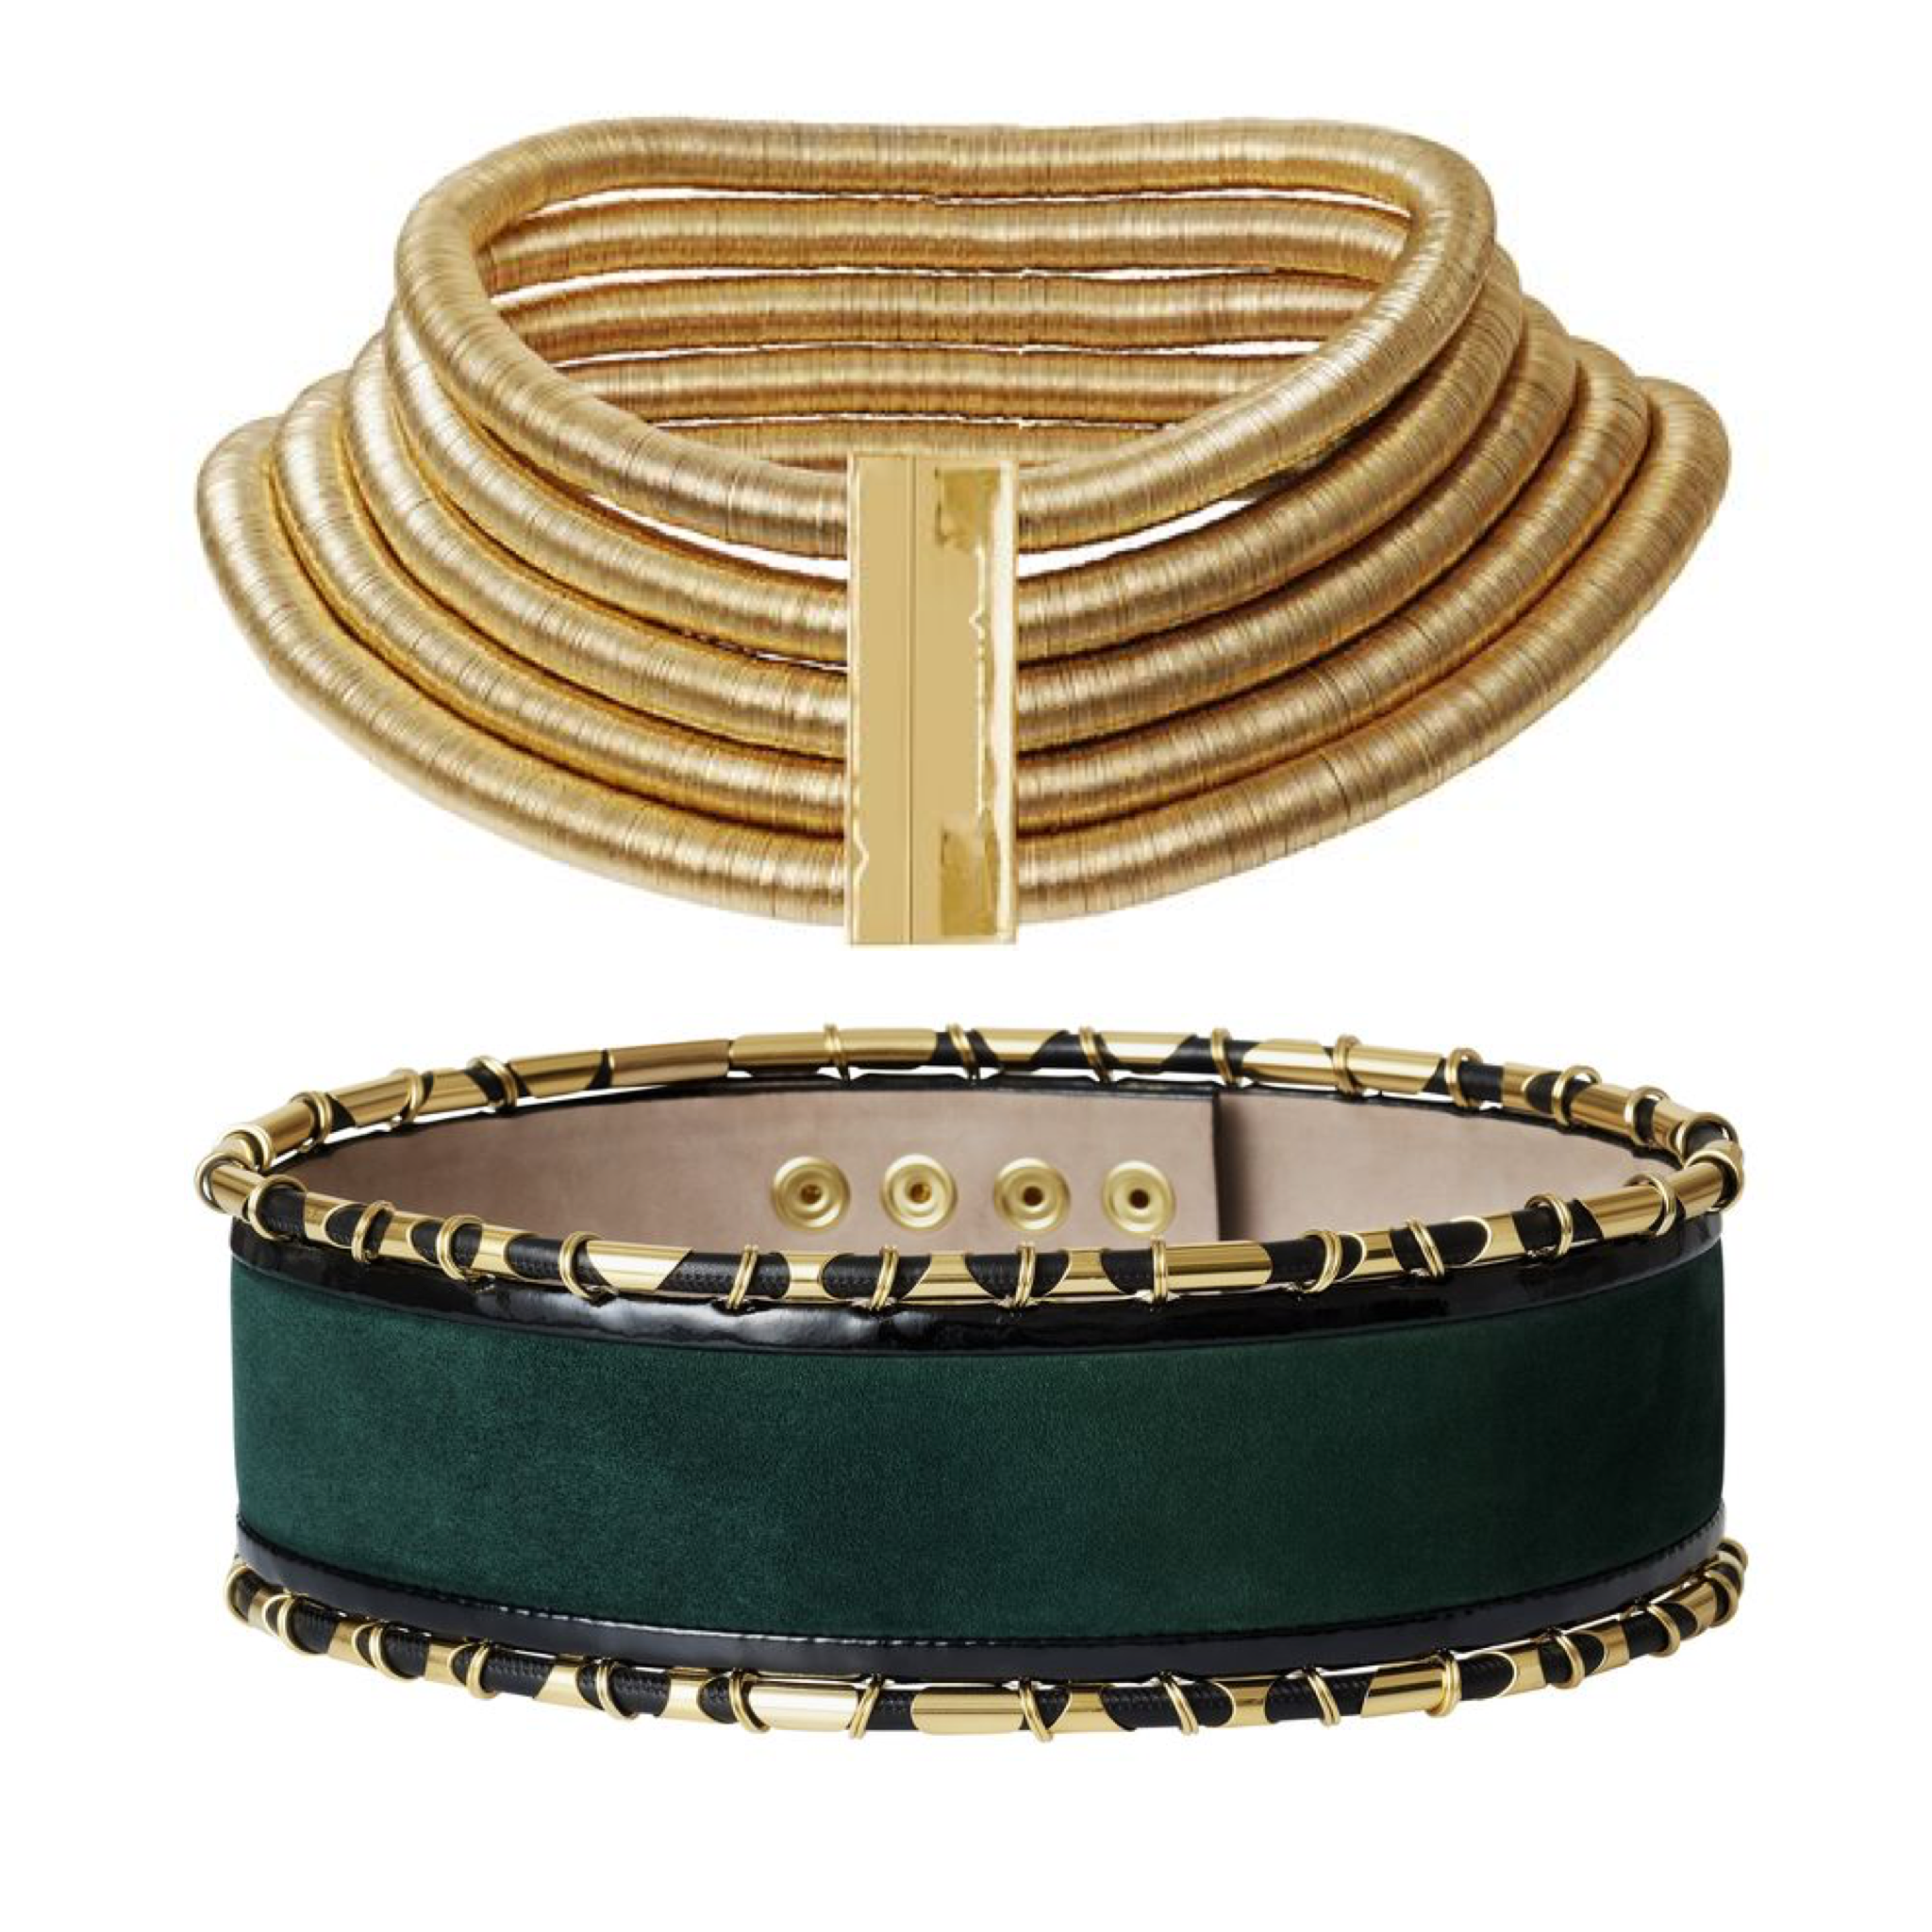 Balmain HM gold choker green belt